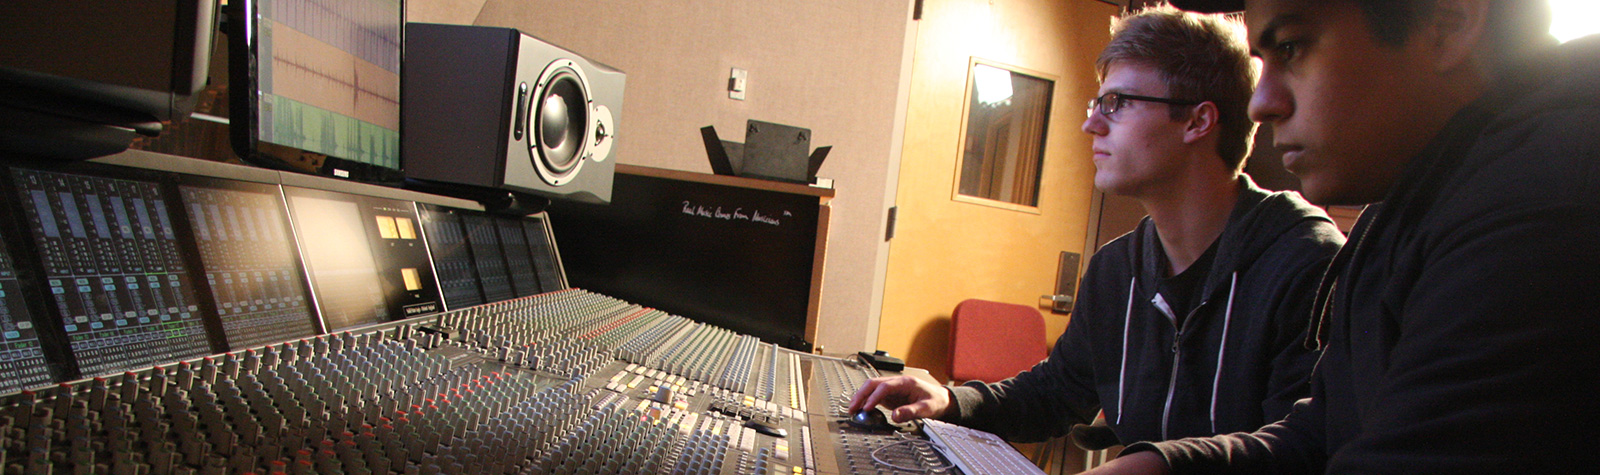 music production students sitting at studio mixing board.